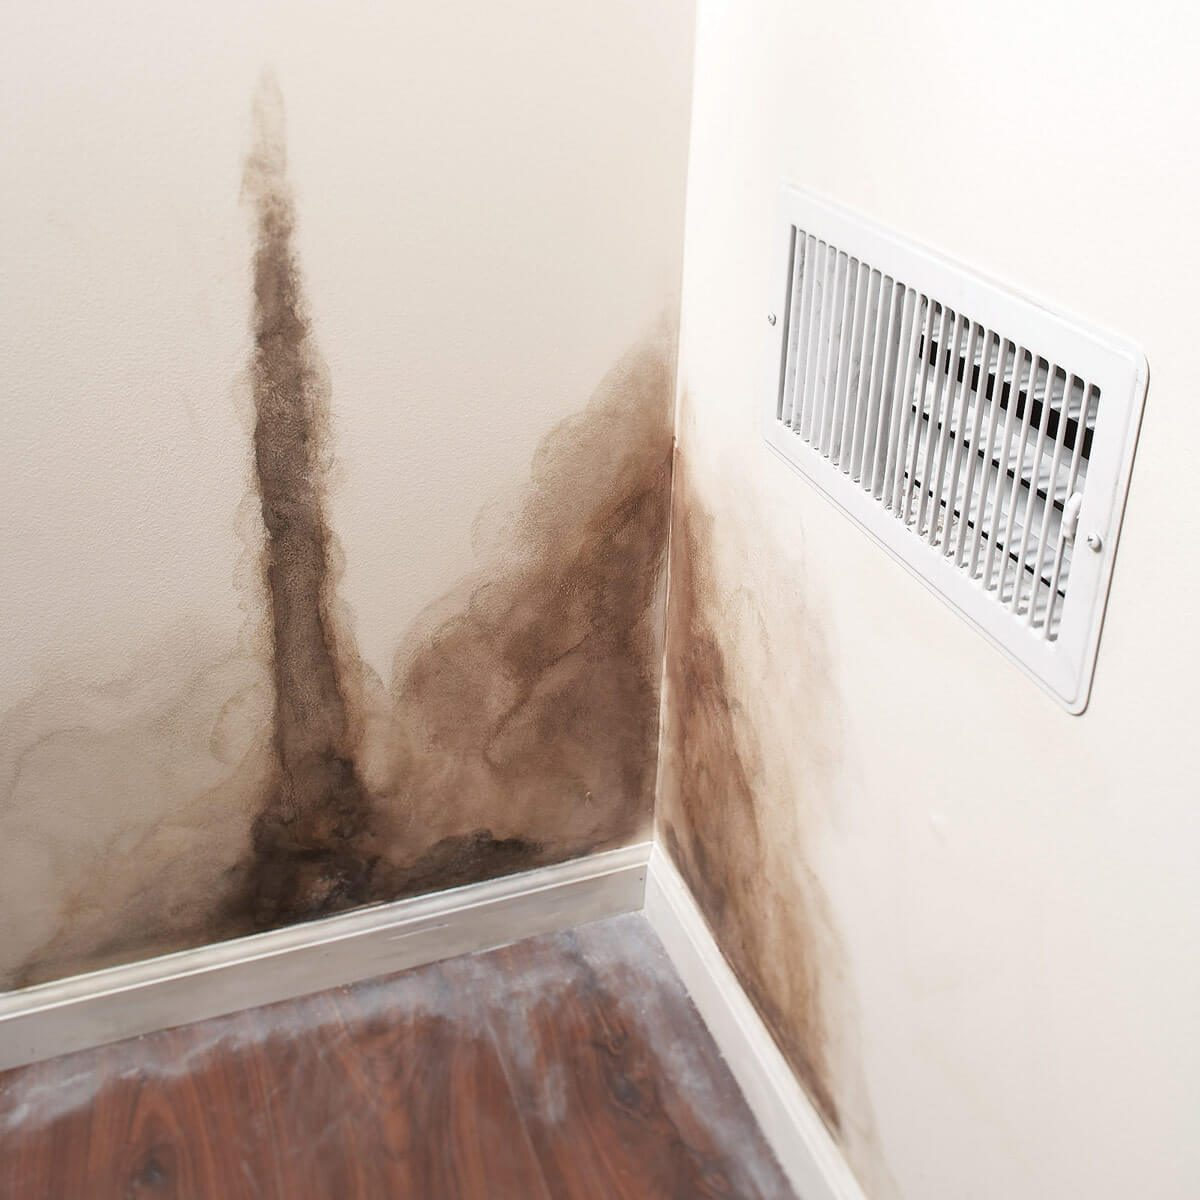 Mold Exposure Doesn't Always Mean Health Problems